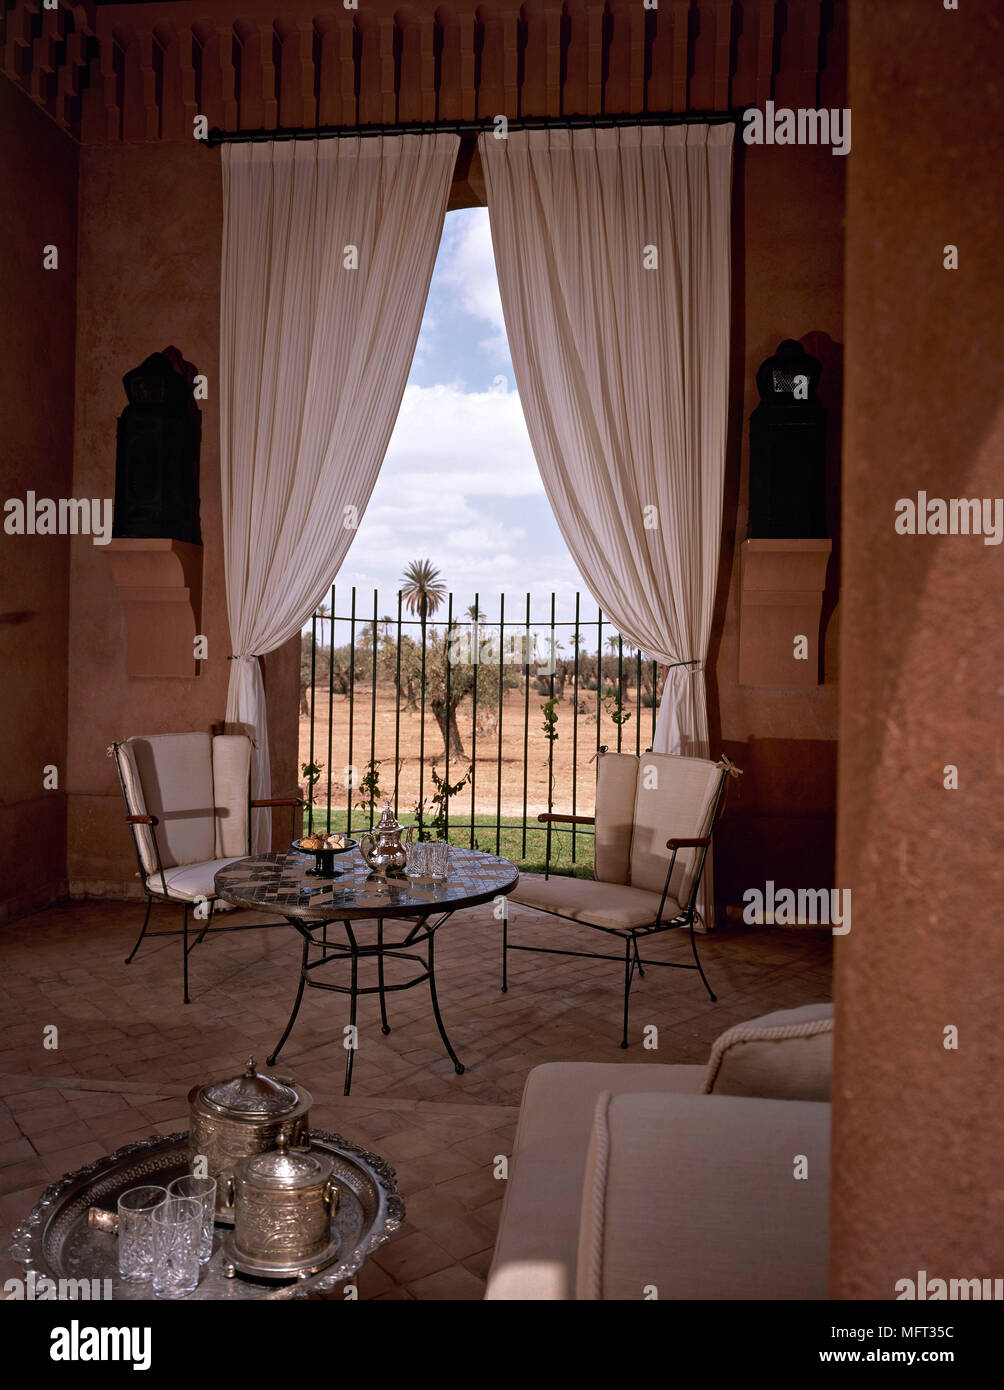 Moroccan sitting room detail metal round table chairs curtains  interiors rooms ethnic influence warm colours - Stock Image